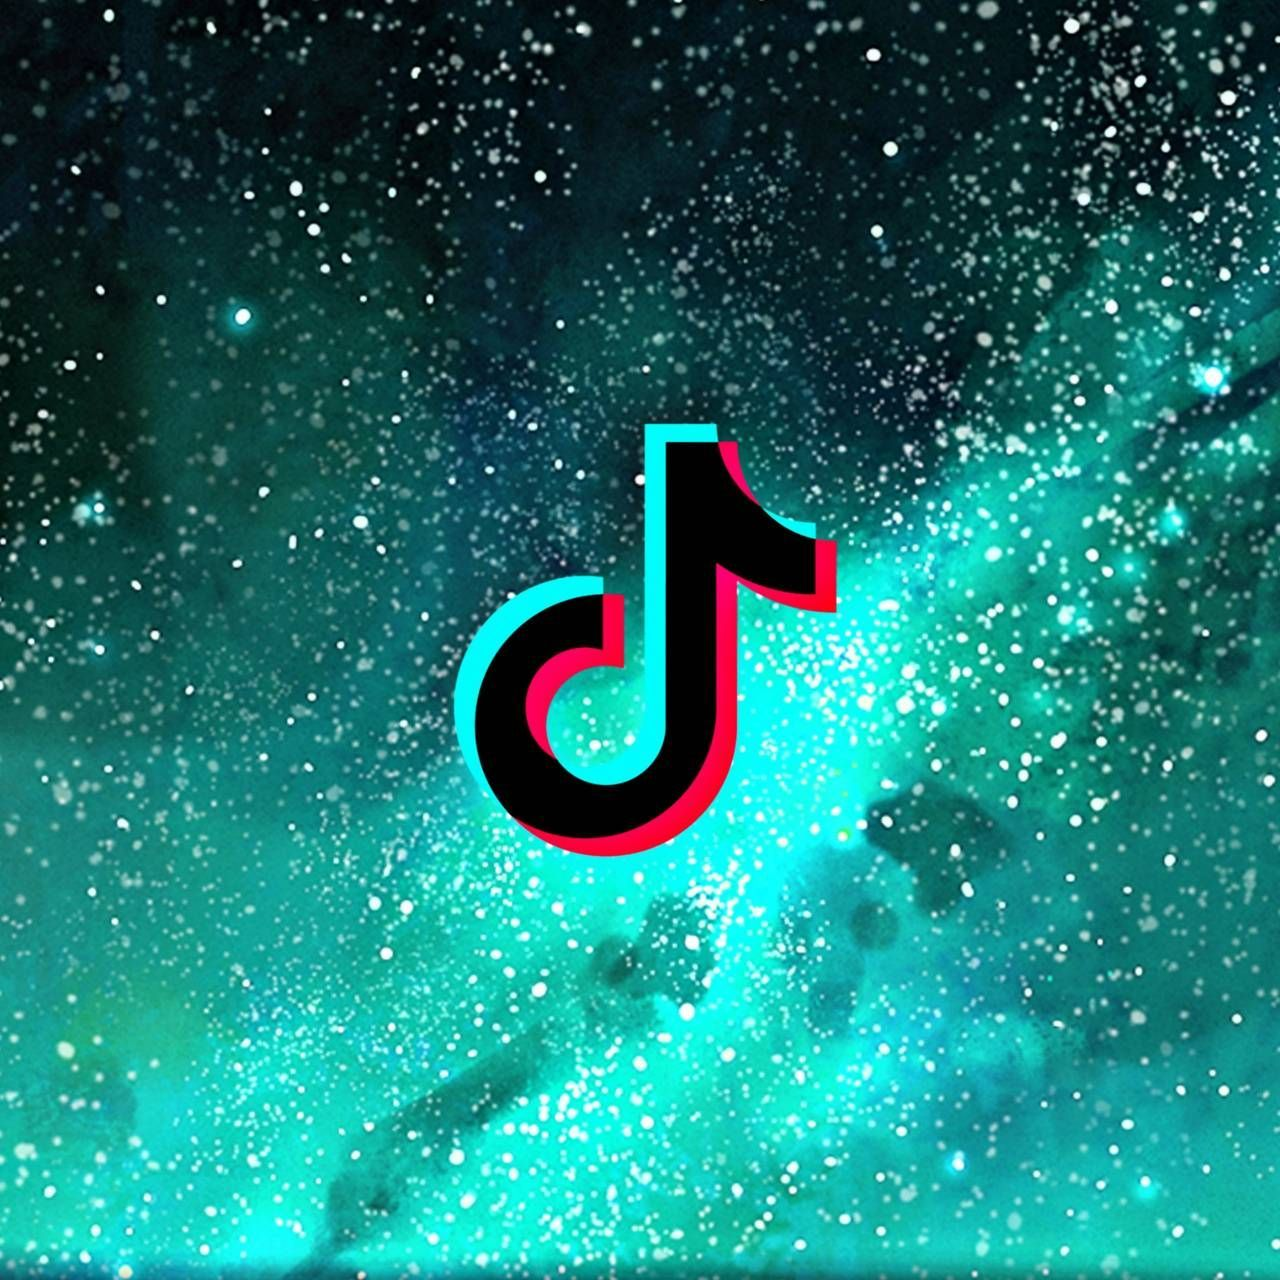 Download Tik Tok Wallpaper By Thelostqueen 44 Free On Zedge Now Browse Millions Of Popular Wallpaper Backgrounds Galaxy Wallpaper Neon Wallpaper